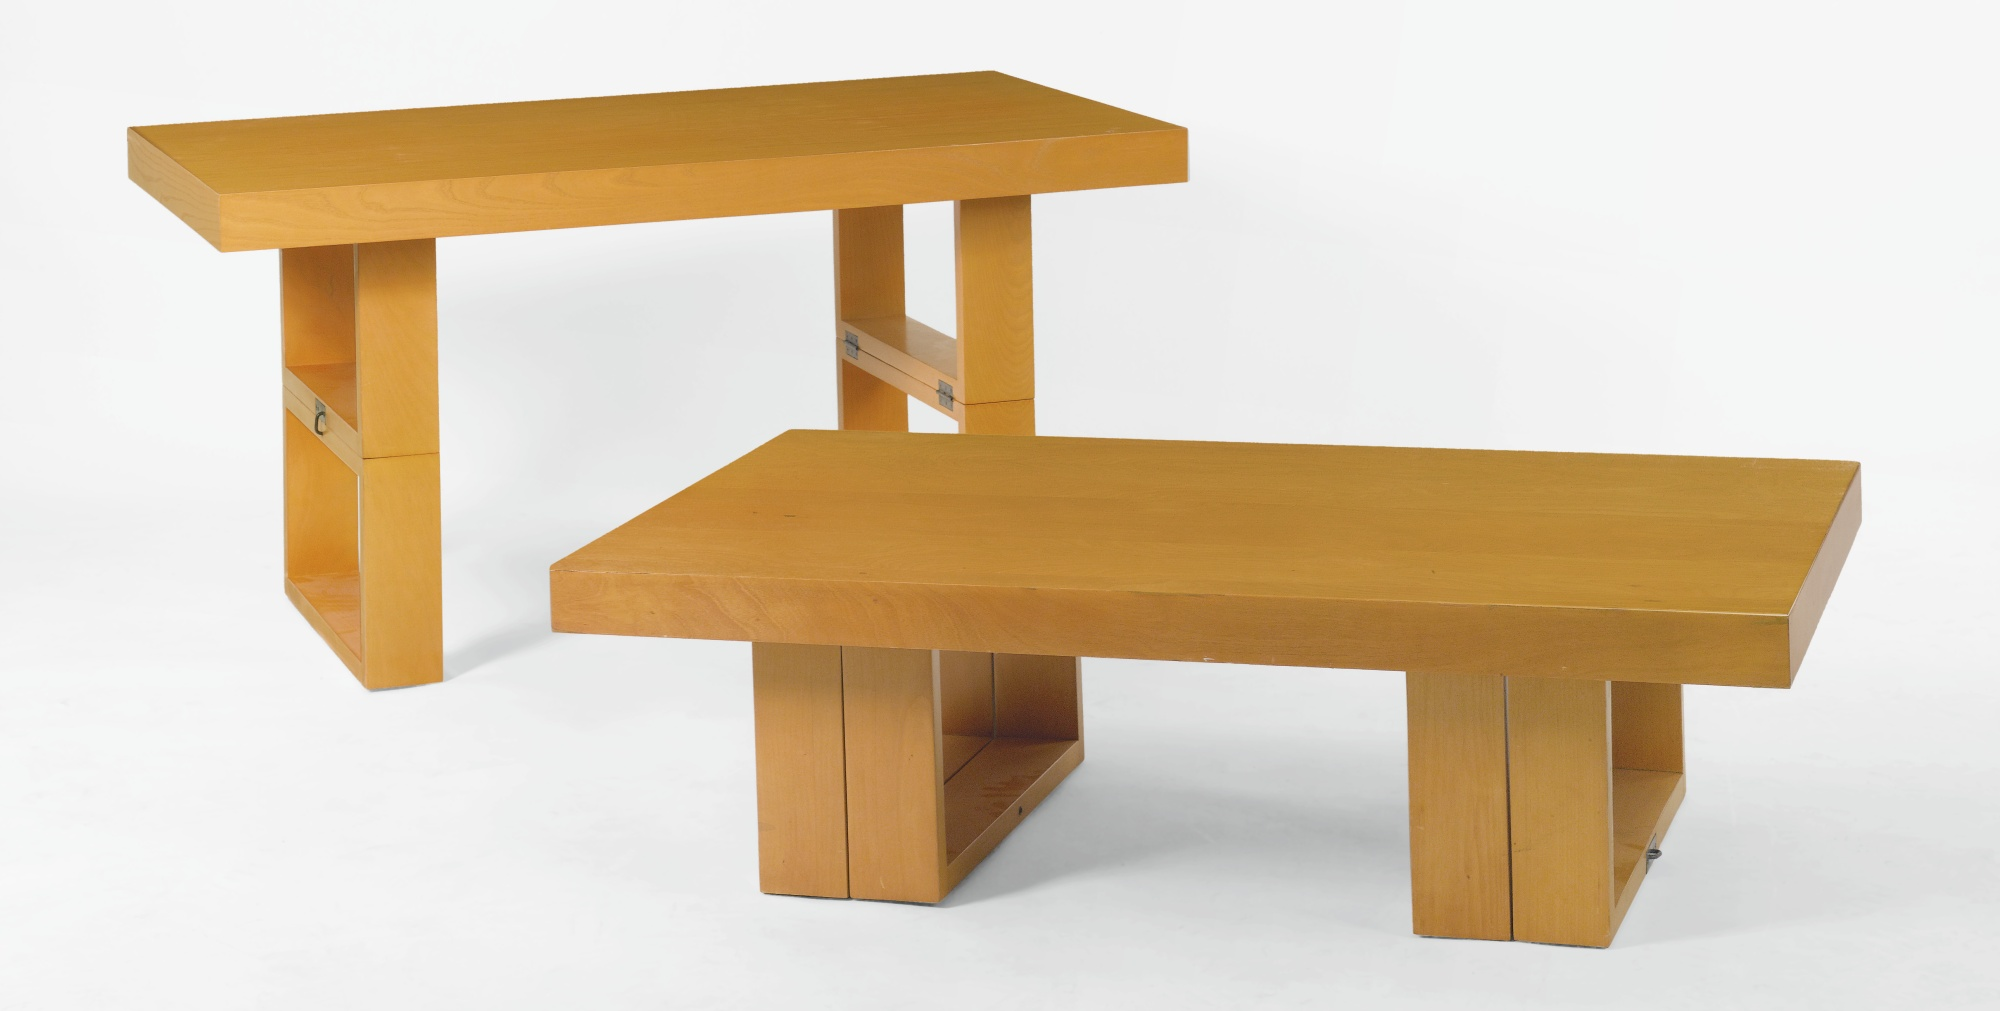 Hendrik Van Keppel and Taylor Green - Camel Table-1950